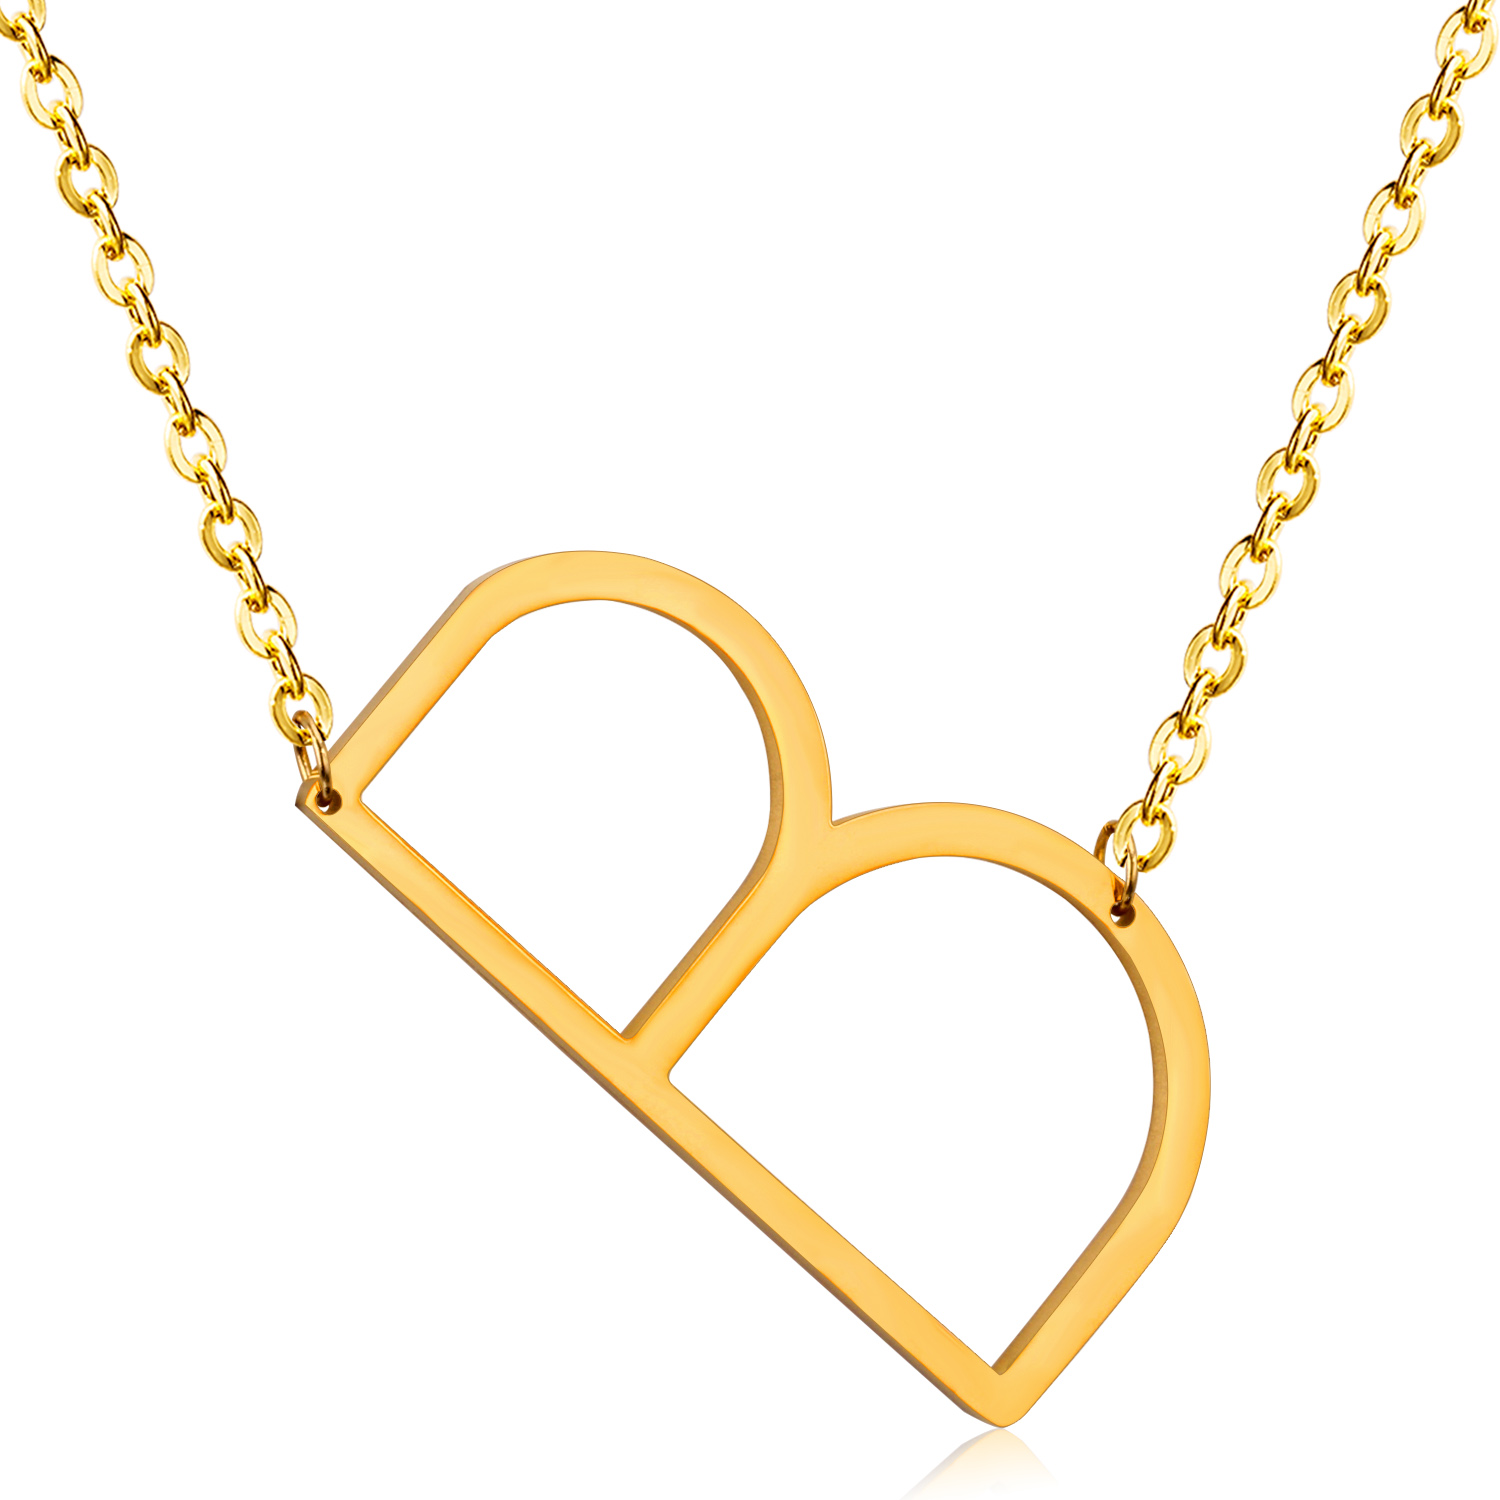 Gold Necklace Capital Initial B Letter Pendant & Necklace Fashion Alphabet Letter Necklace Women Men(